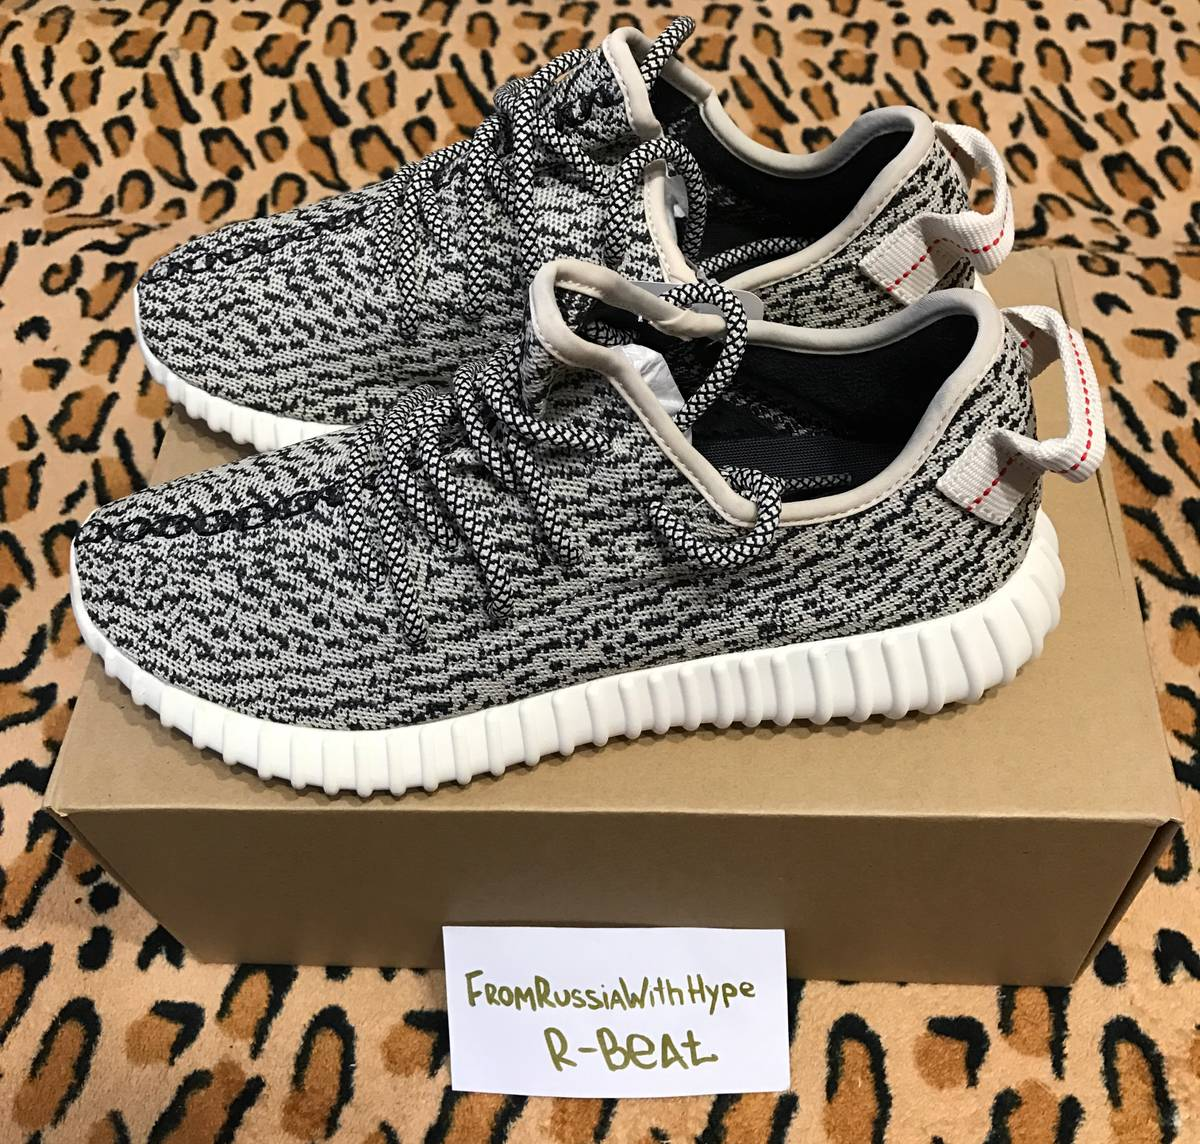 Buy cheap adidas yeezy boost 350 v2 womens for sale,adidas blade